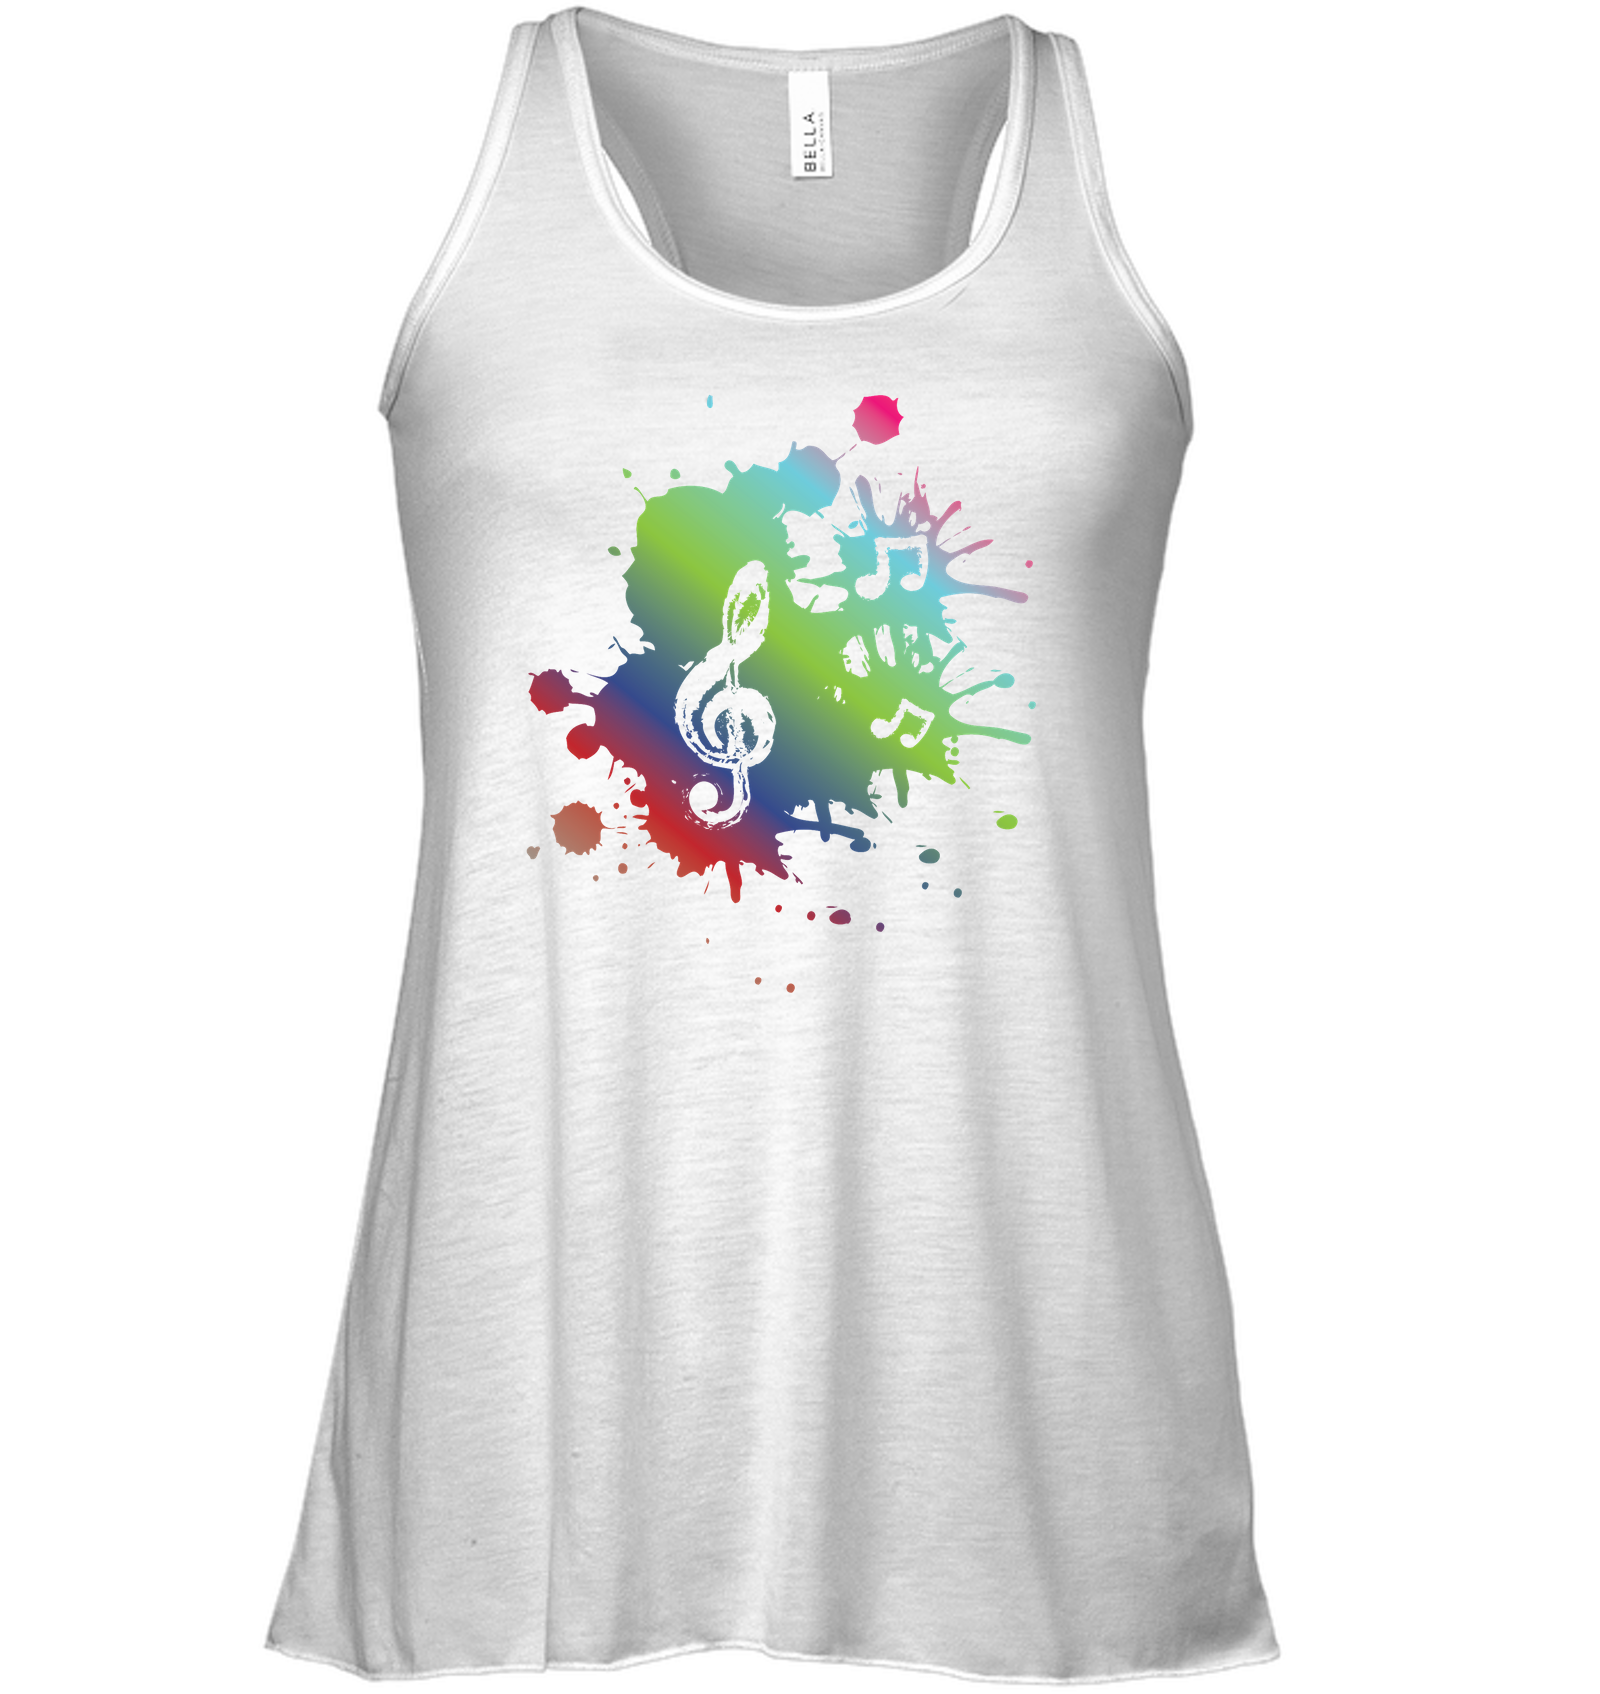 A Colorful Splash of Music - Bella + Canvas Women's Flowy Racerback Tank